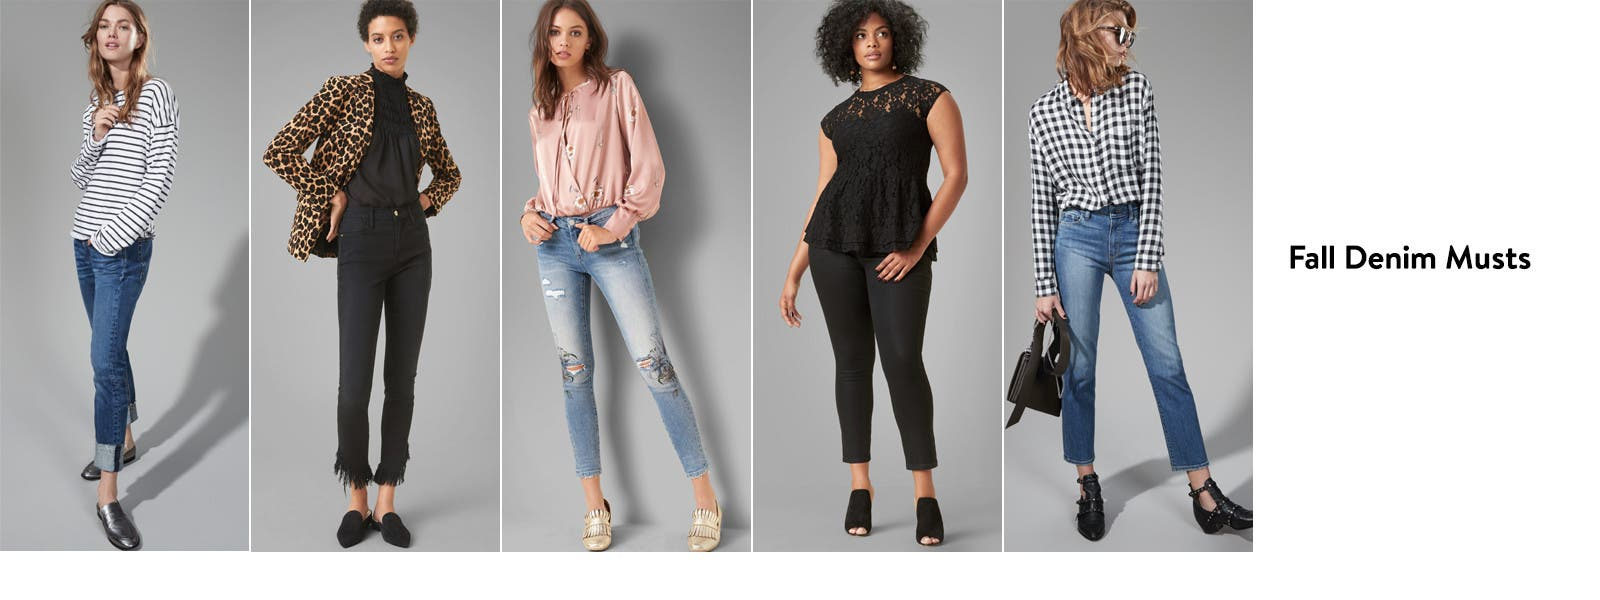 Fall denim musts for women.